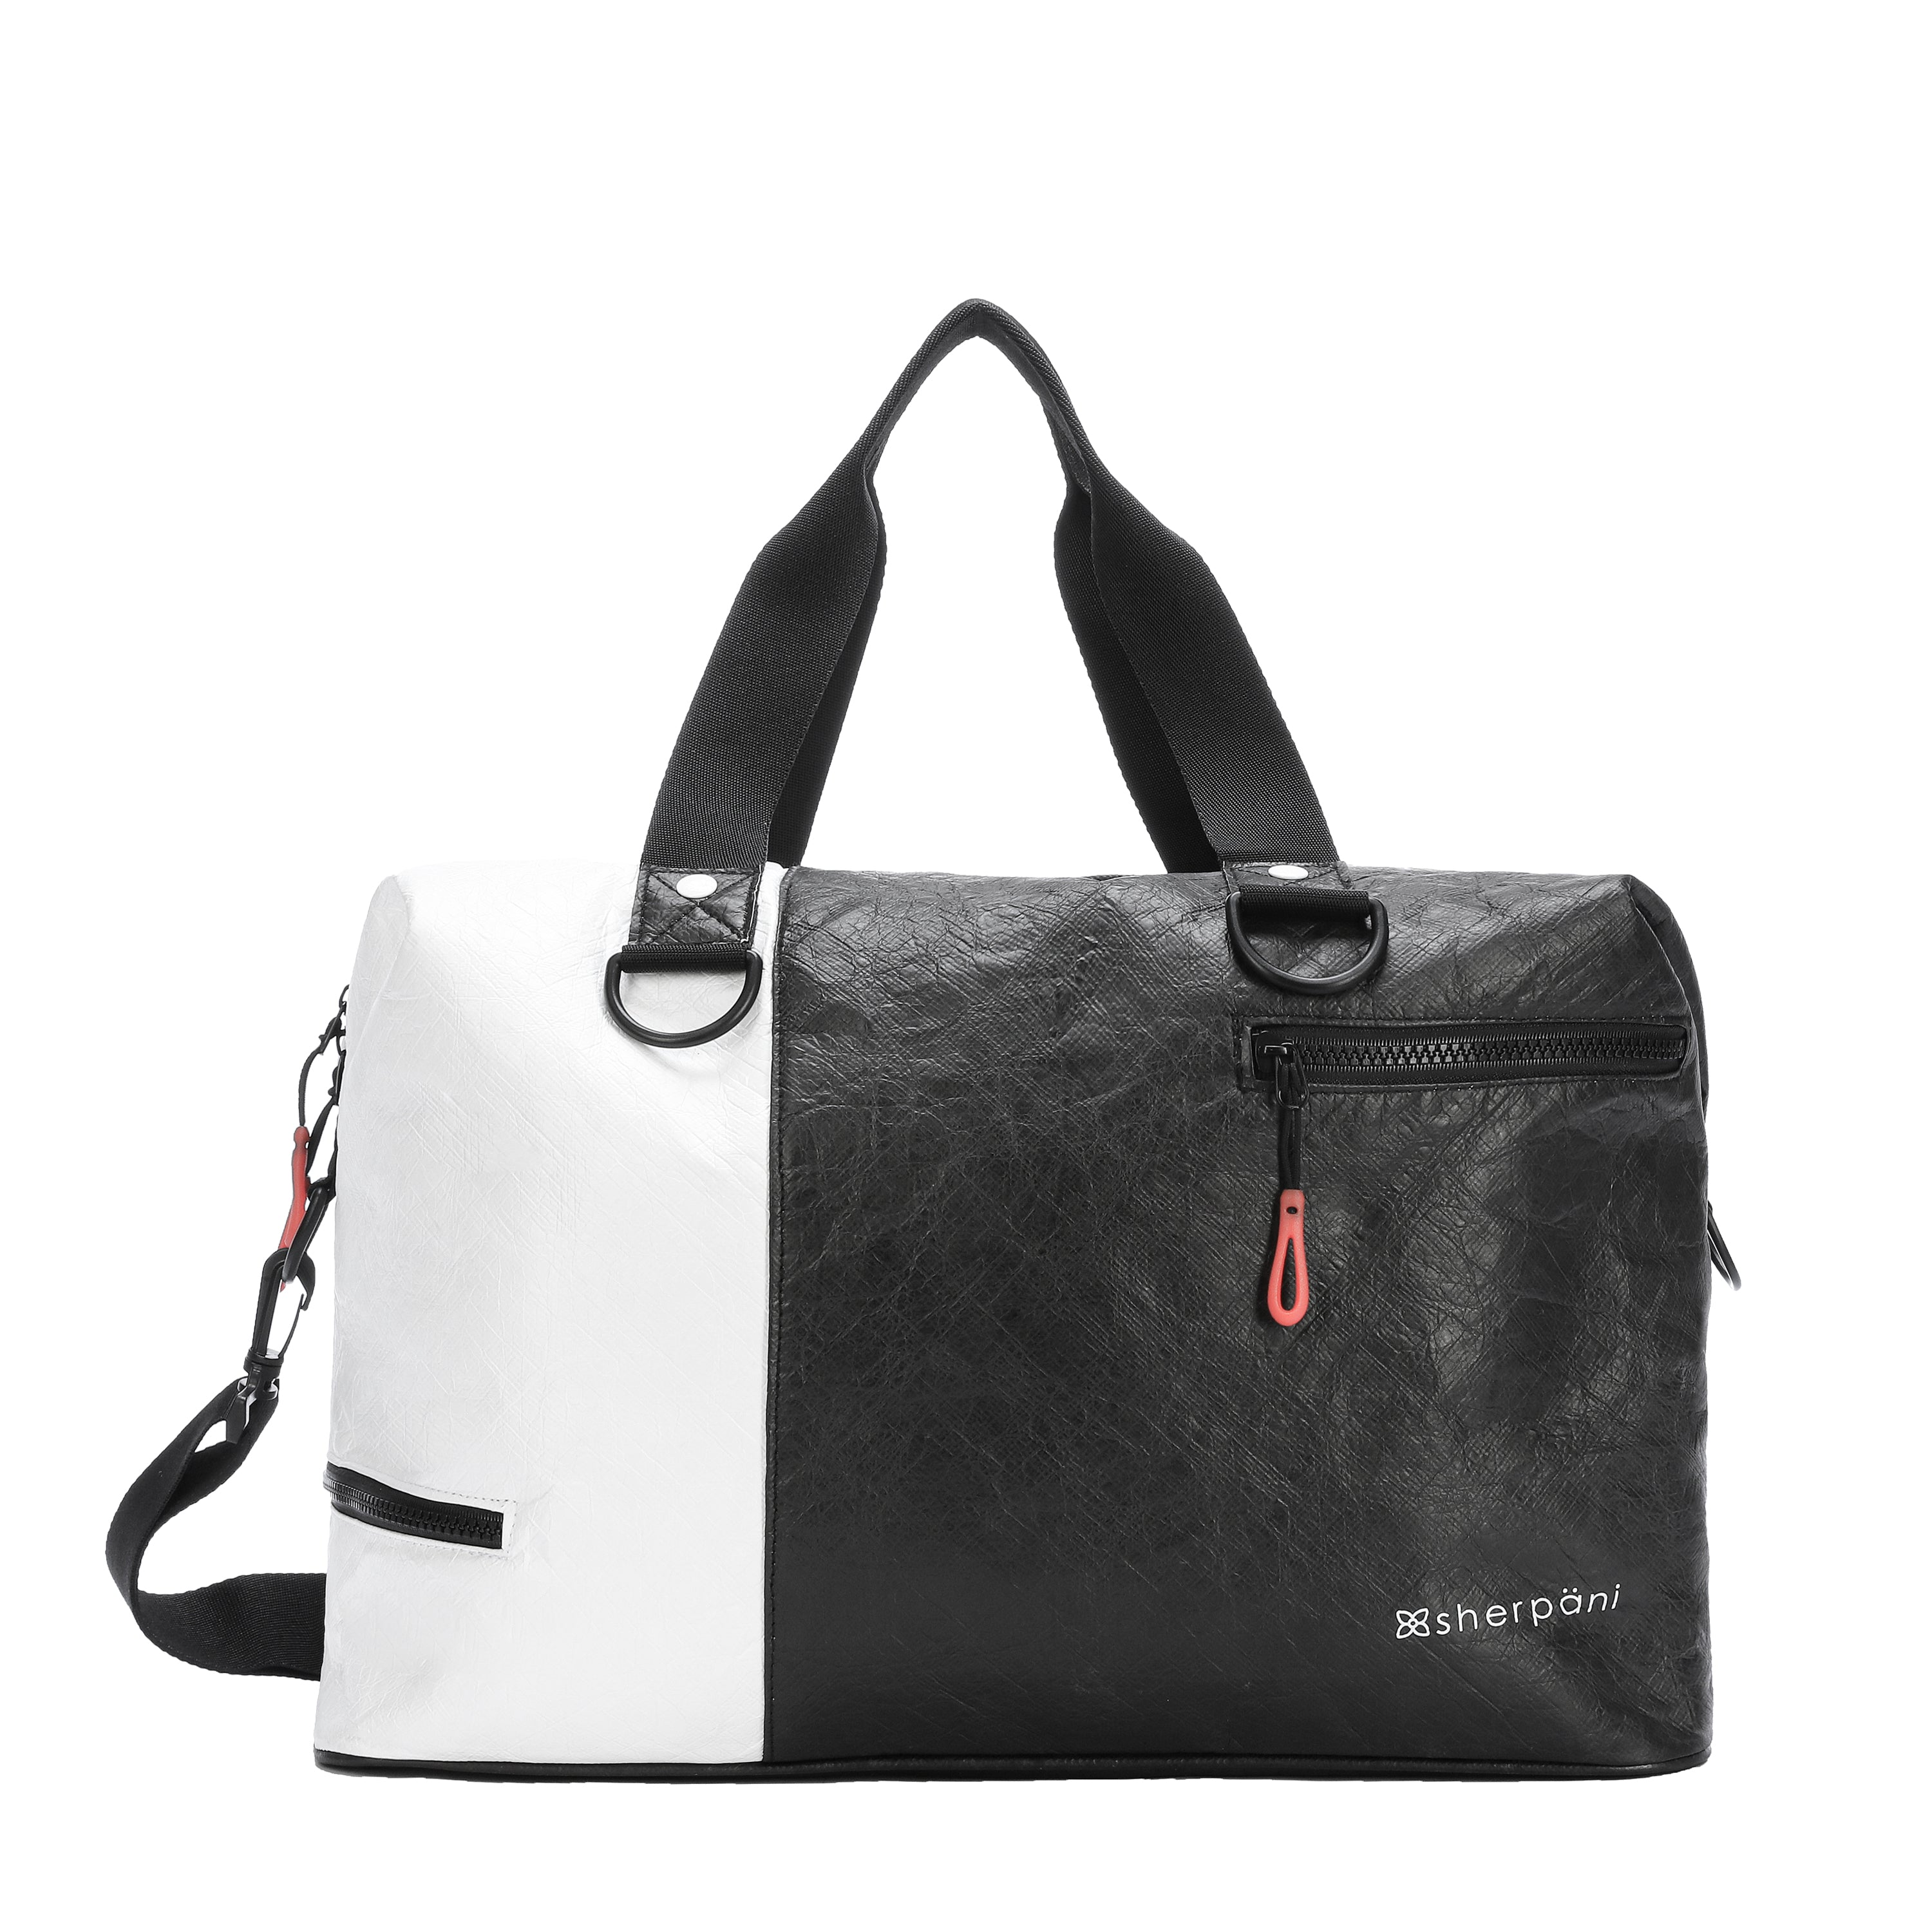 Black & White Duffle bag and Gym bag (front view) made with tyvek fabric